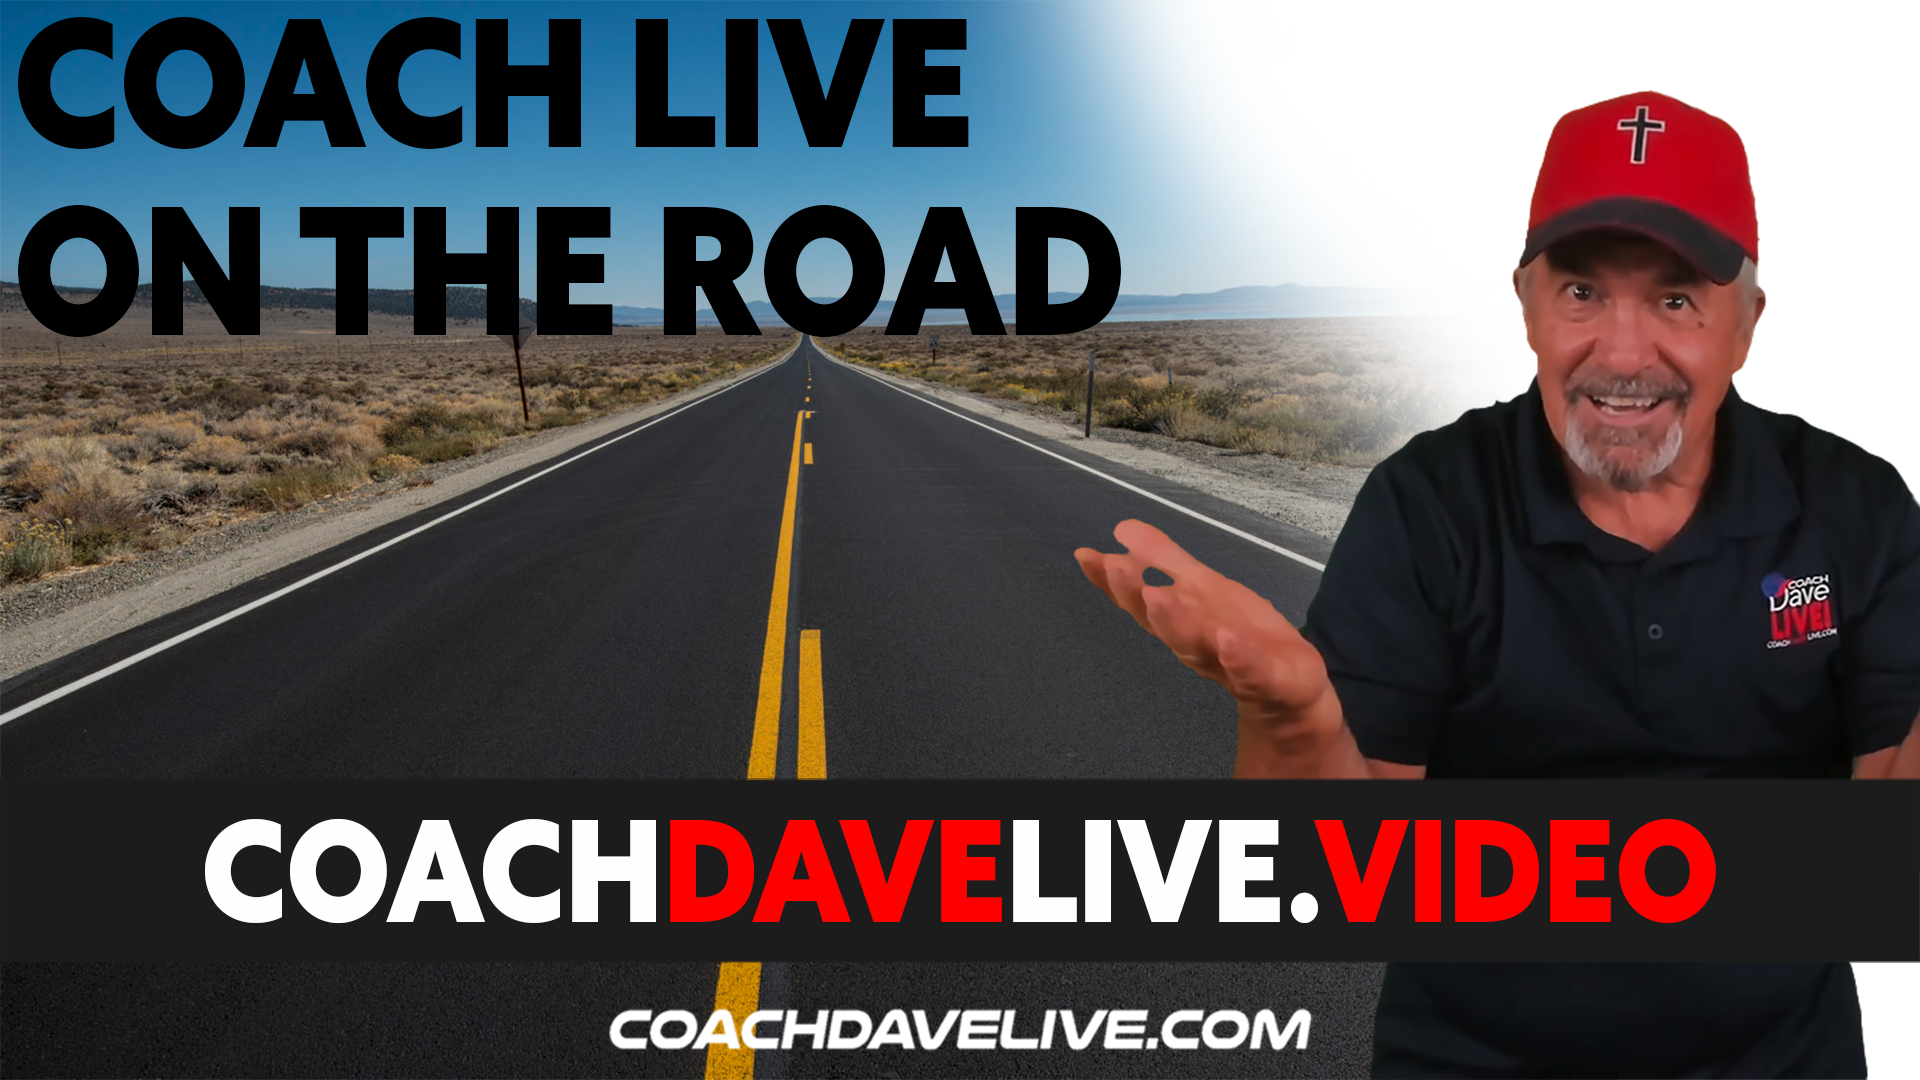 Coach Dave LIVE | 9-2-2021 | COACH LIVE ON THE ROAD